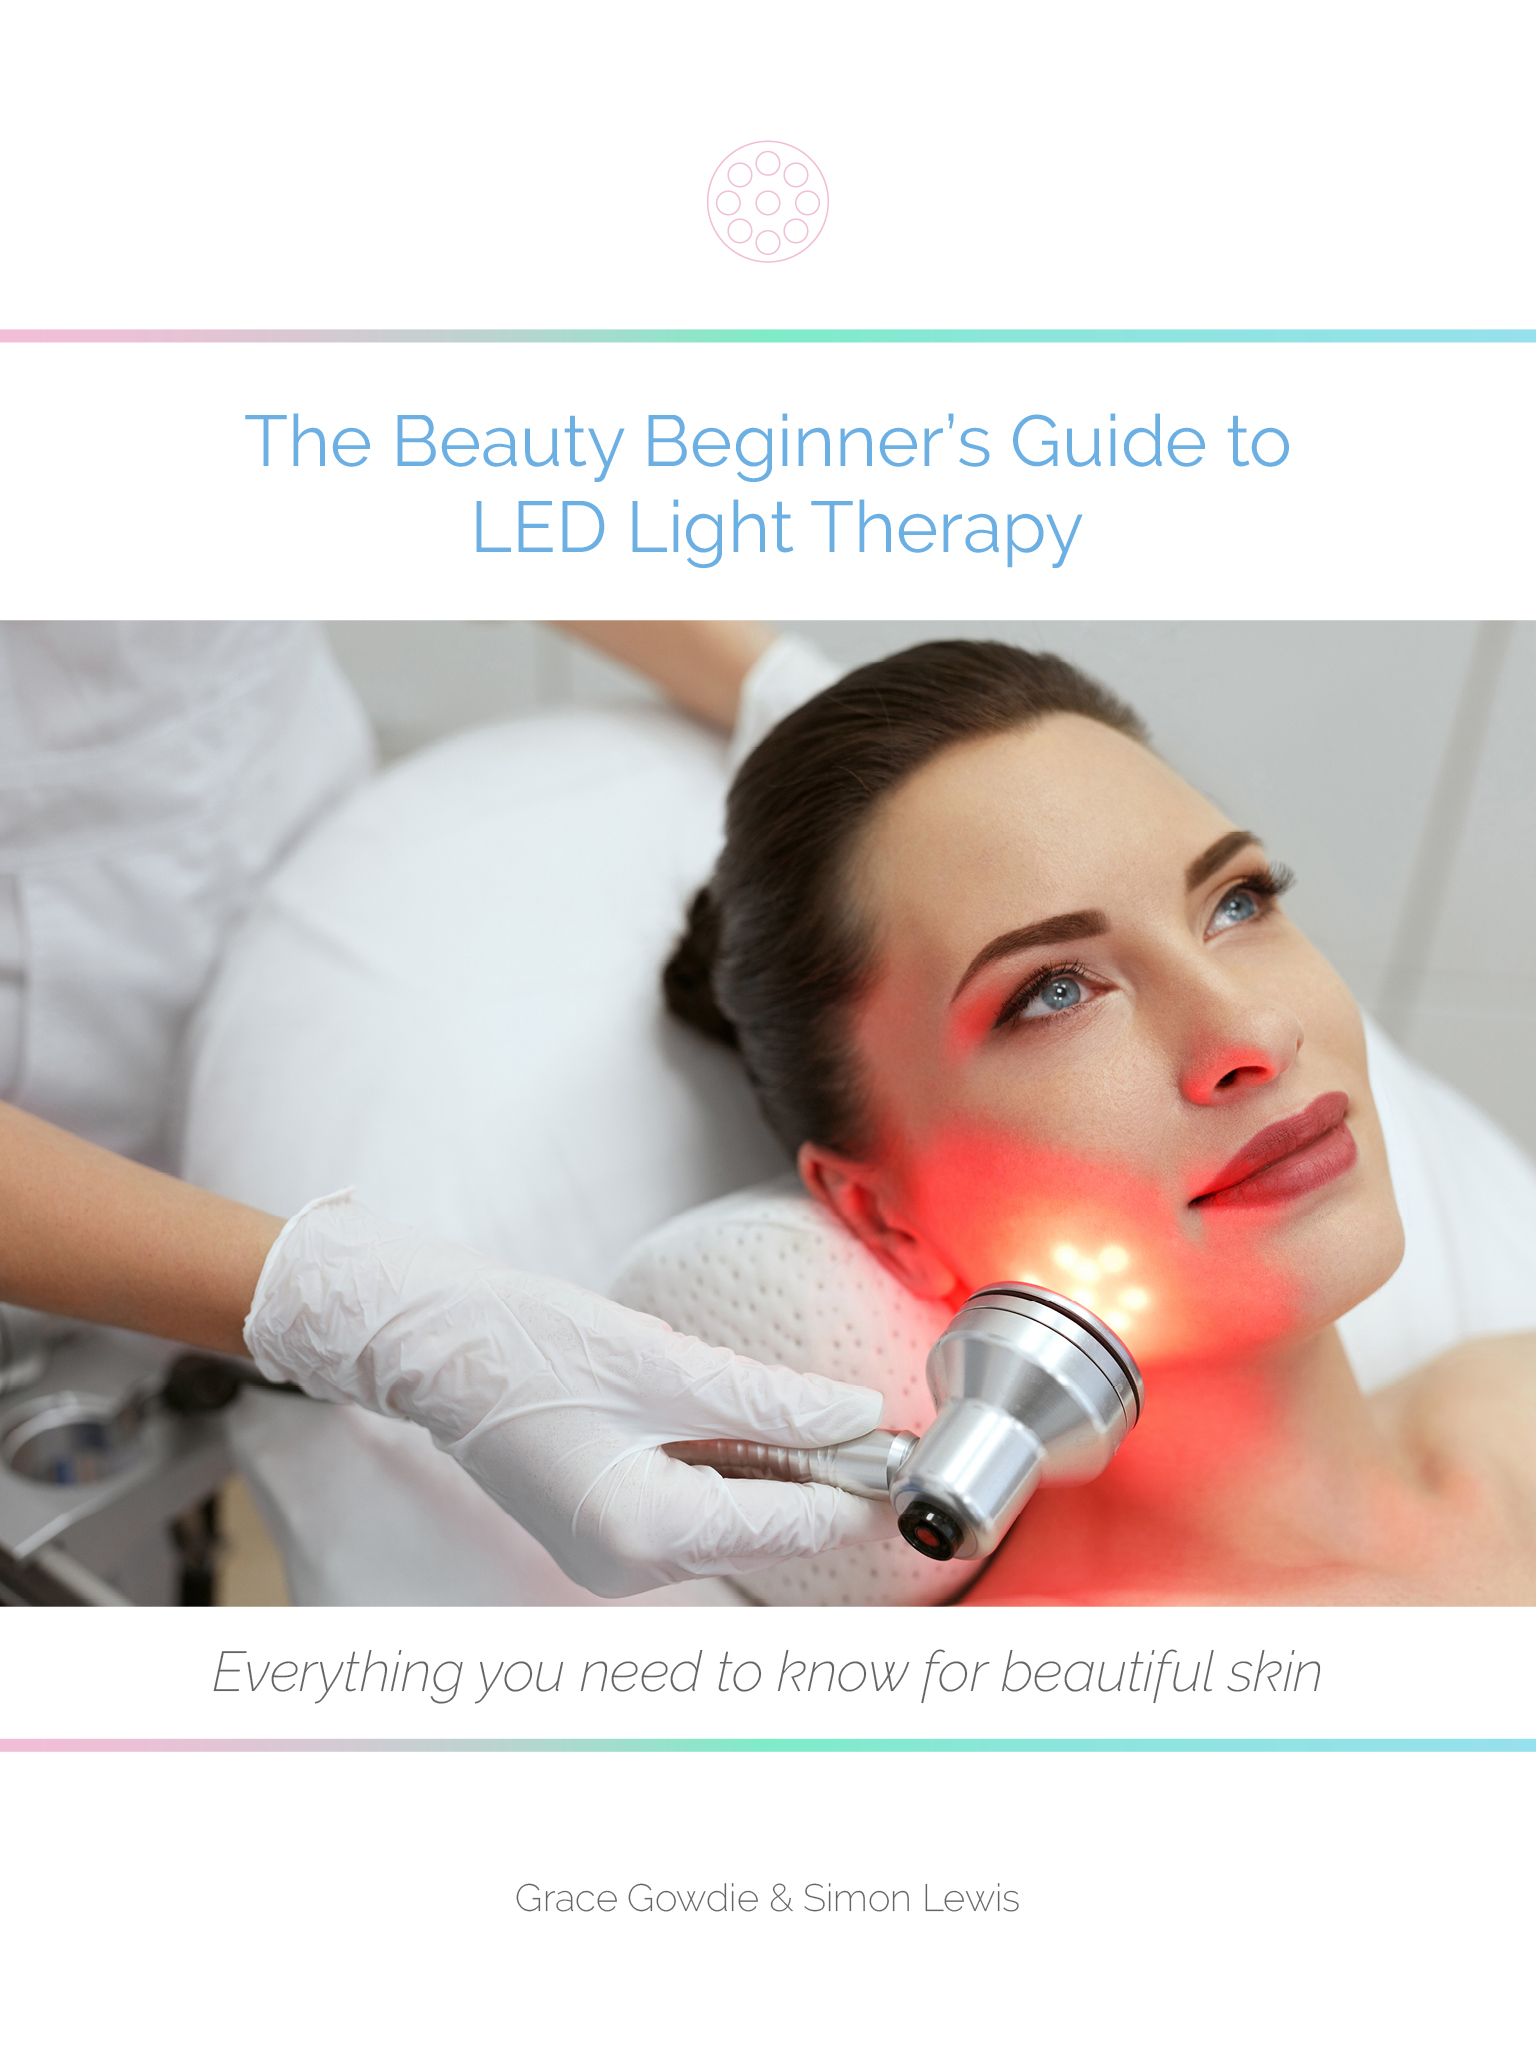 The Beauty Beginners Guide to LED Light Therapy